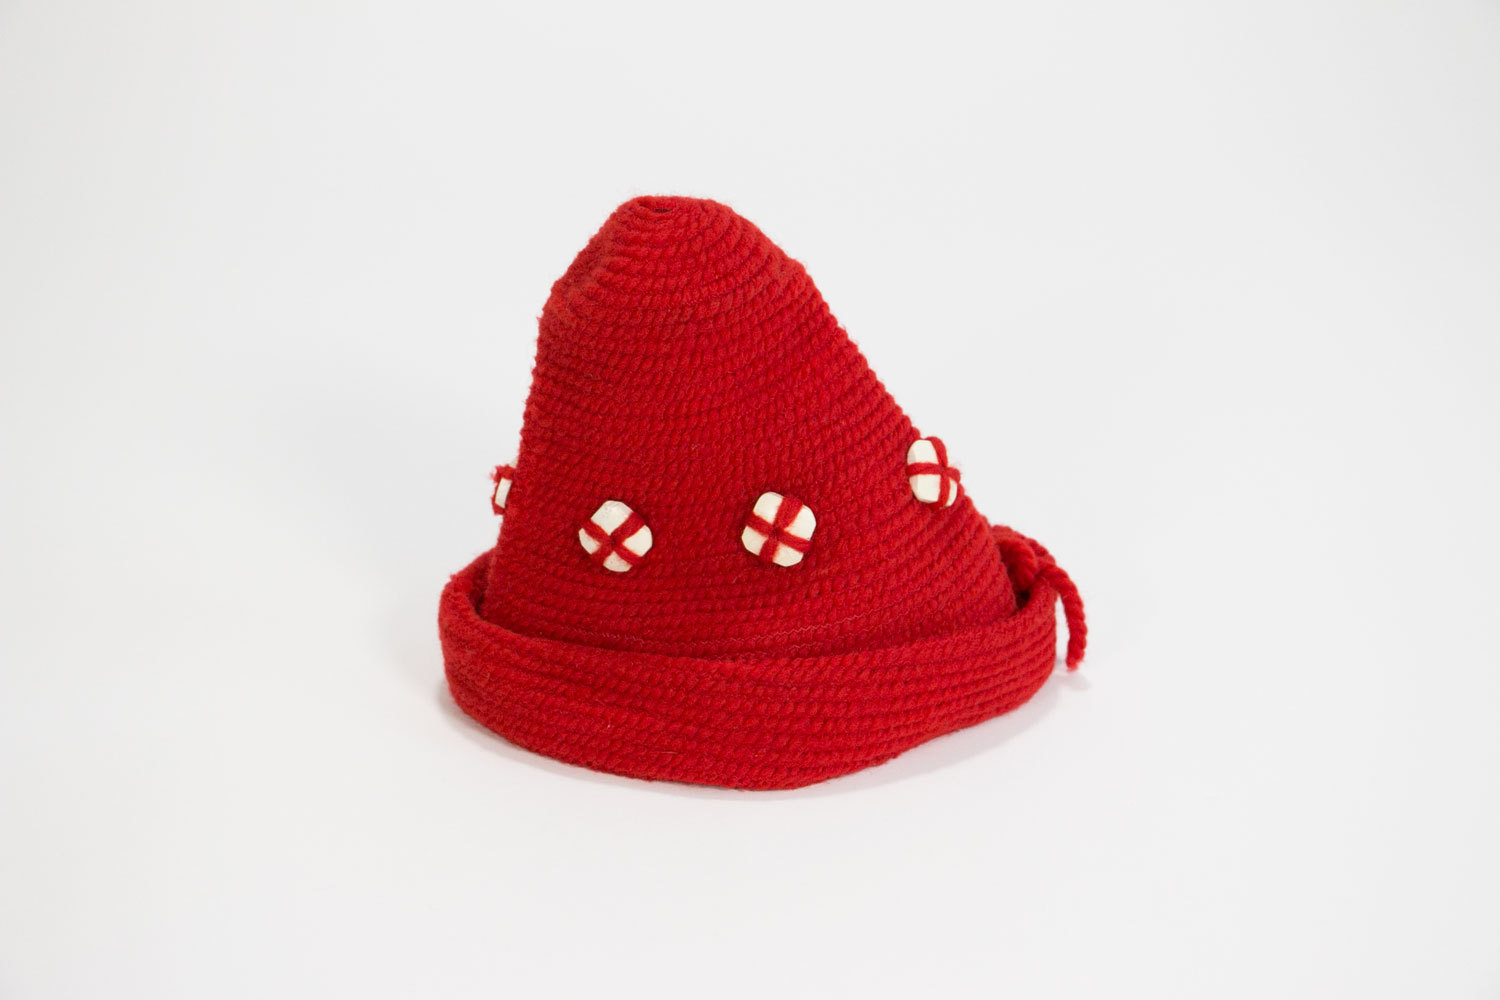 Unique 1950's - 1960's Handmade Red Wool Knit Beatnick / Hippie Beanie / Cap / German / Elf - like, with Slanted Top // Eccentric // Hipster